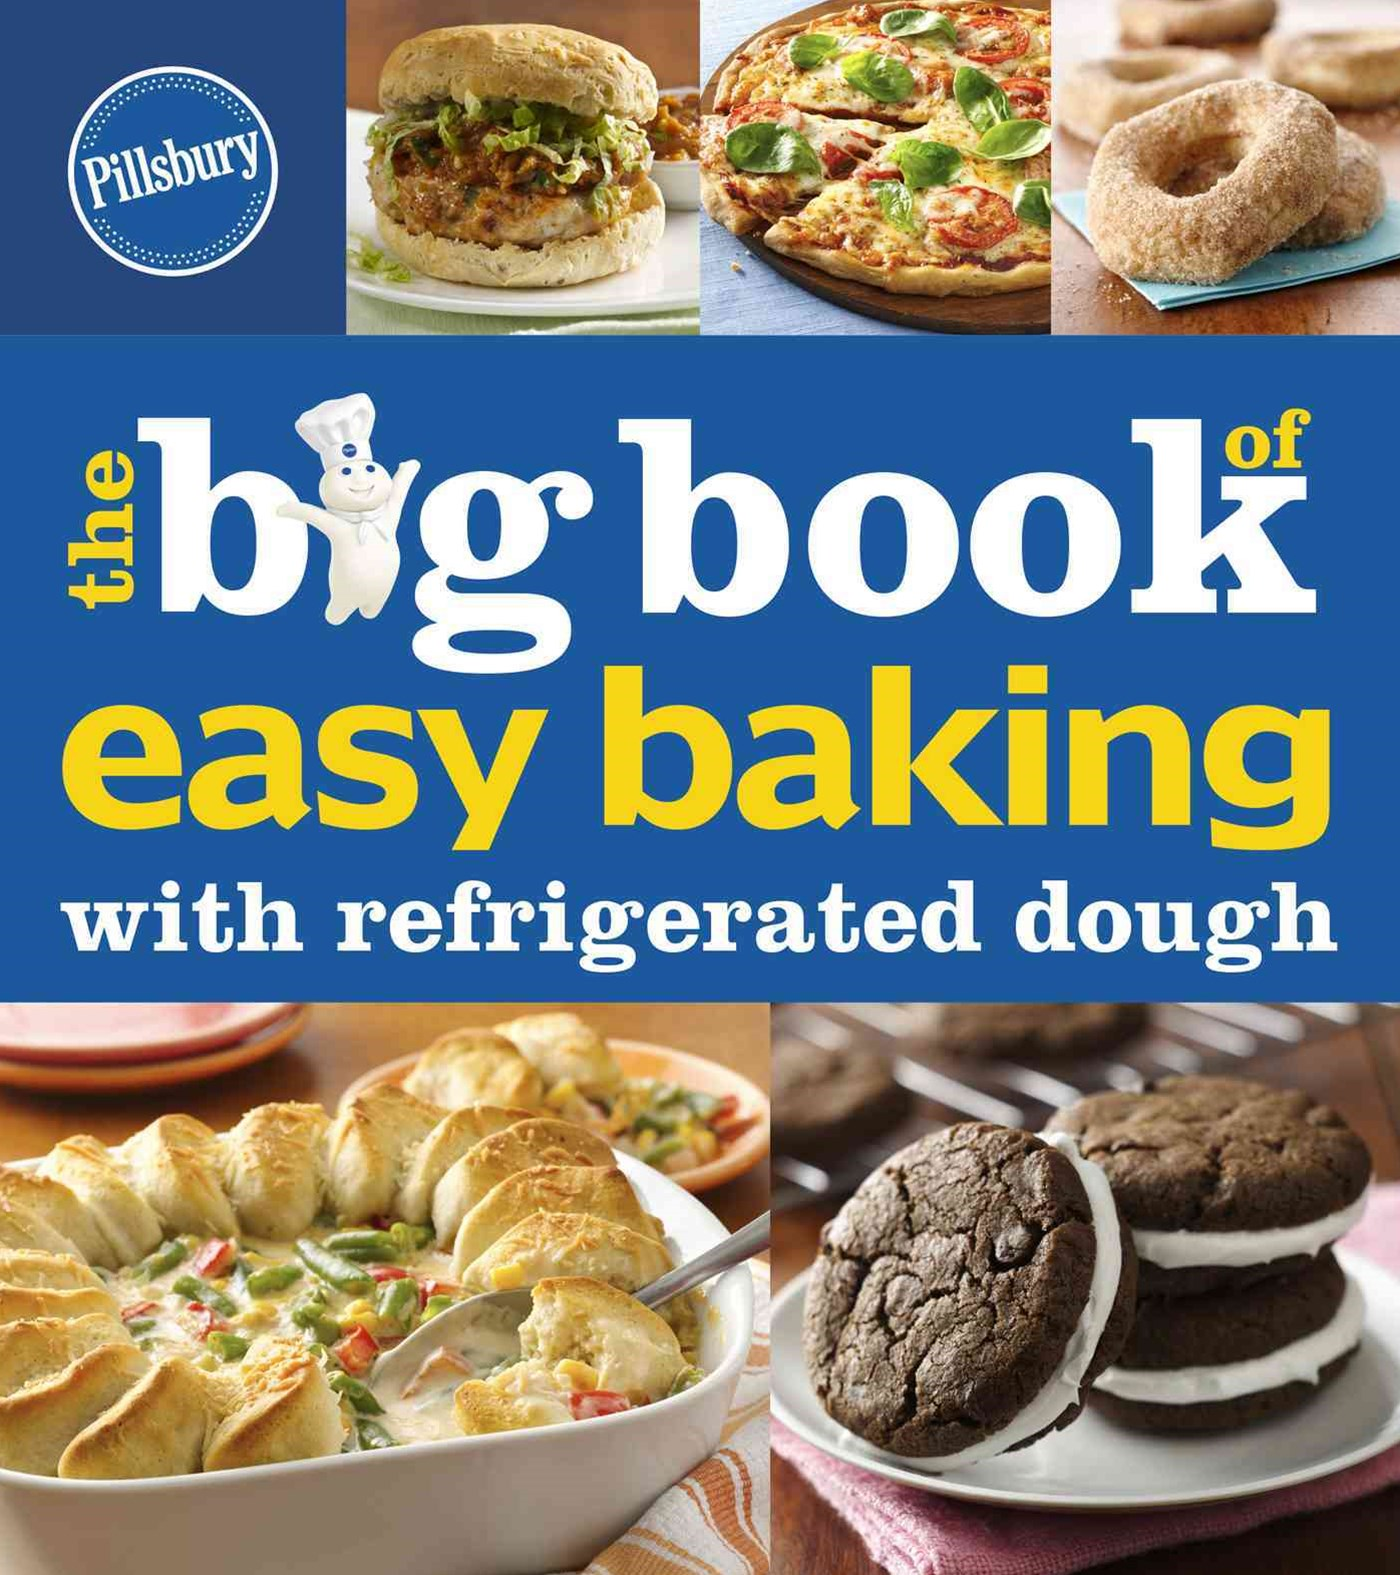 Big Book of Easy Baking with Refrigerated Dough